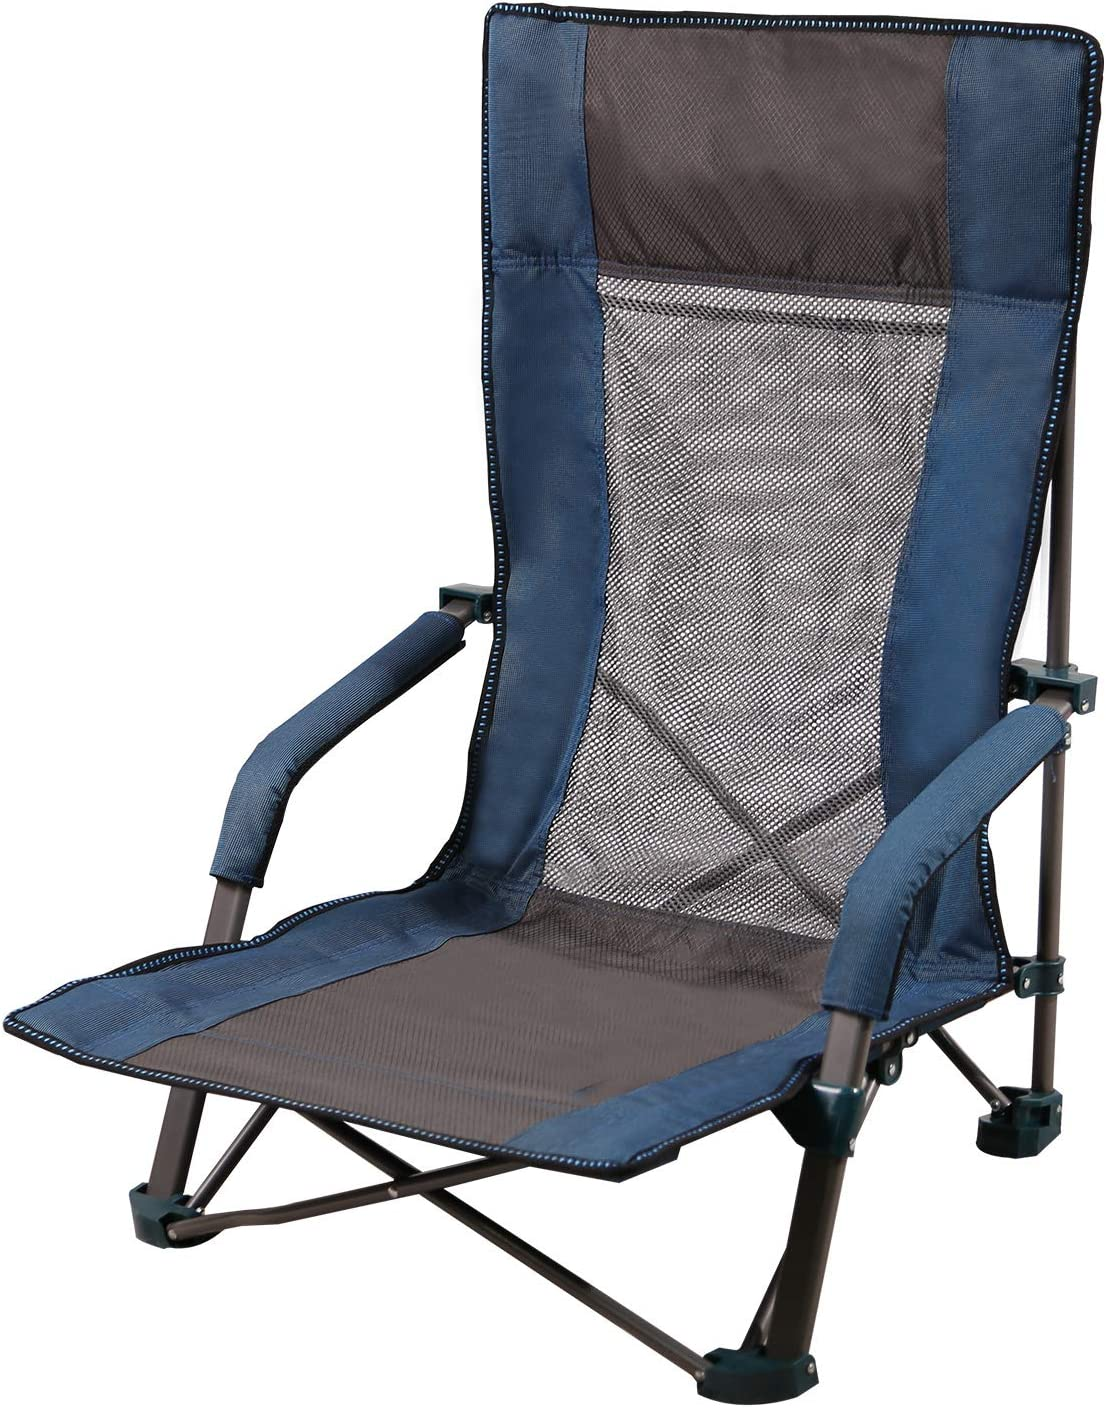 CAMPMAX High Back Low Sling Beach Chair, Portable Folding Camping Chairs for Adults Outdoor Backpacking Lawn